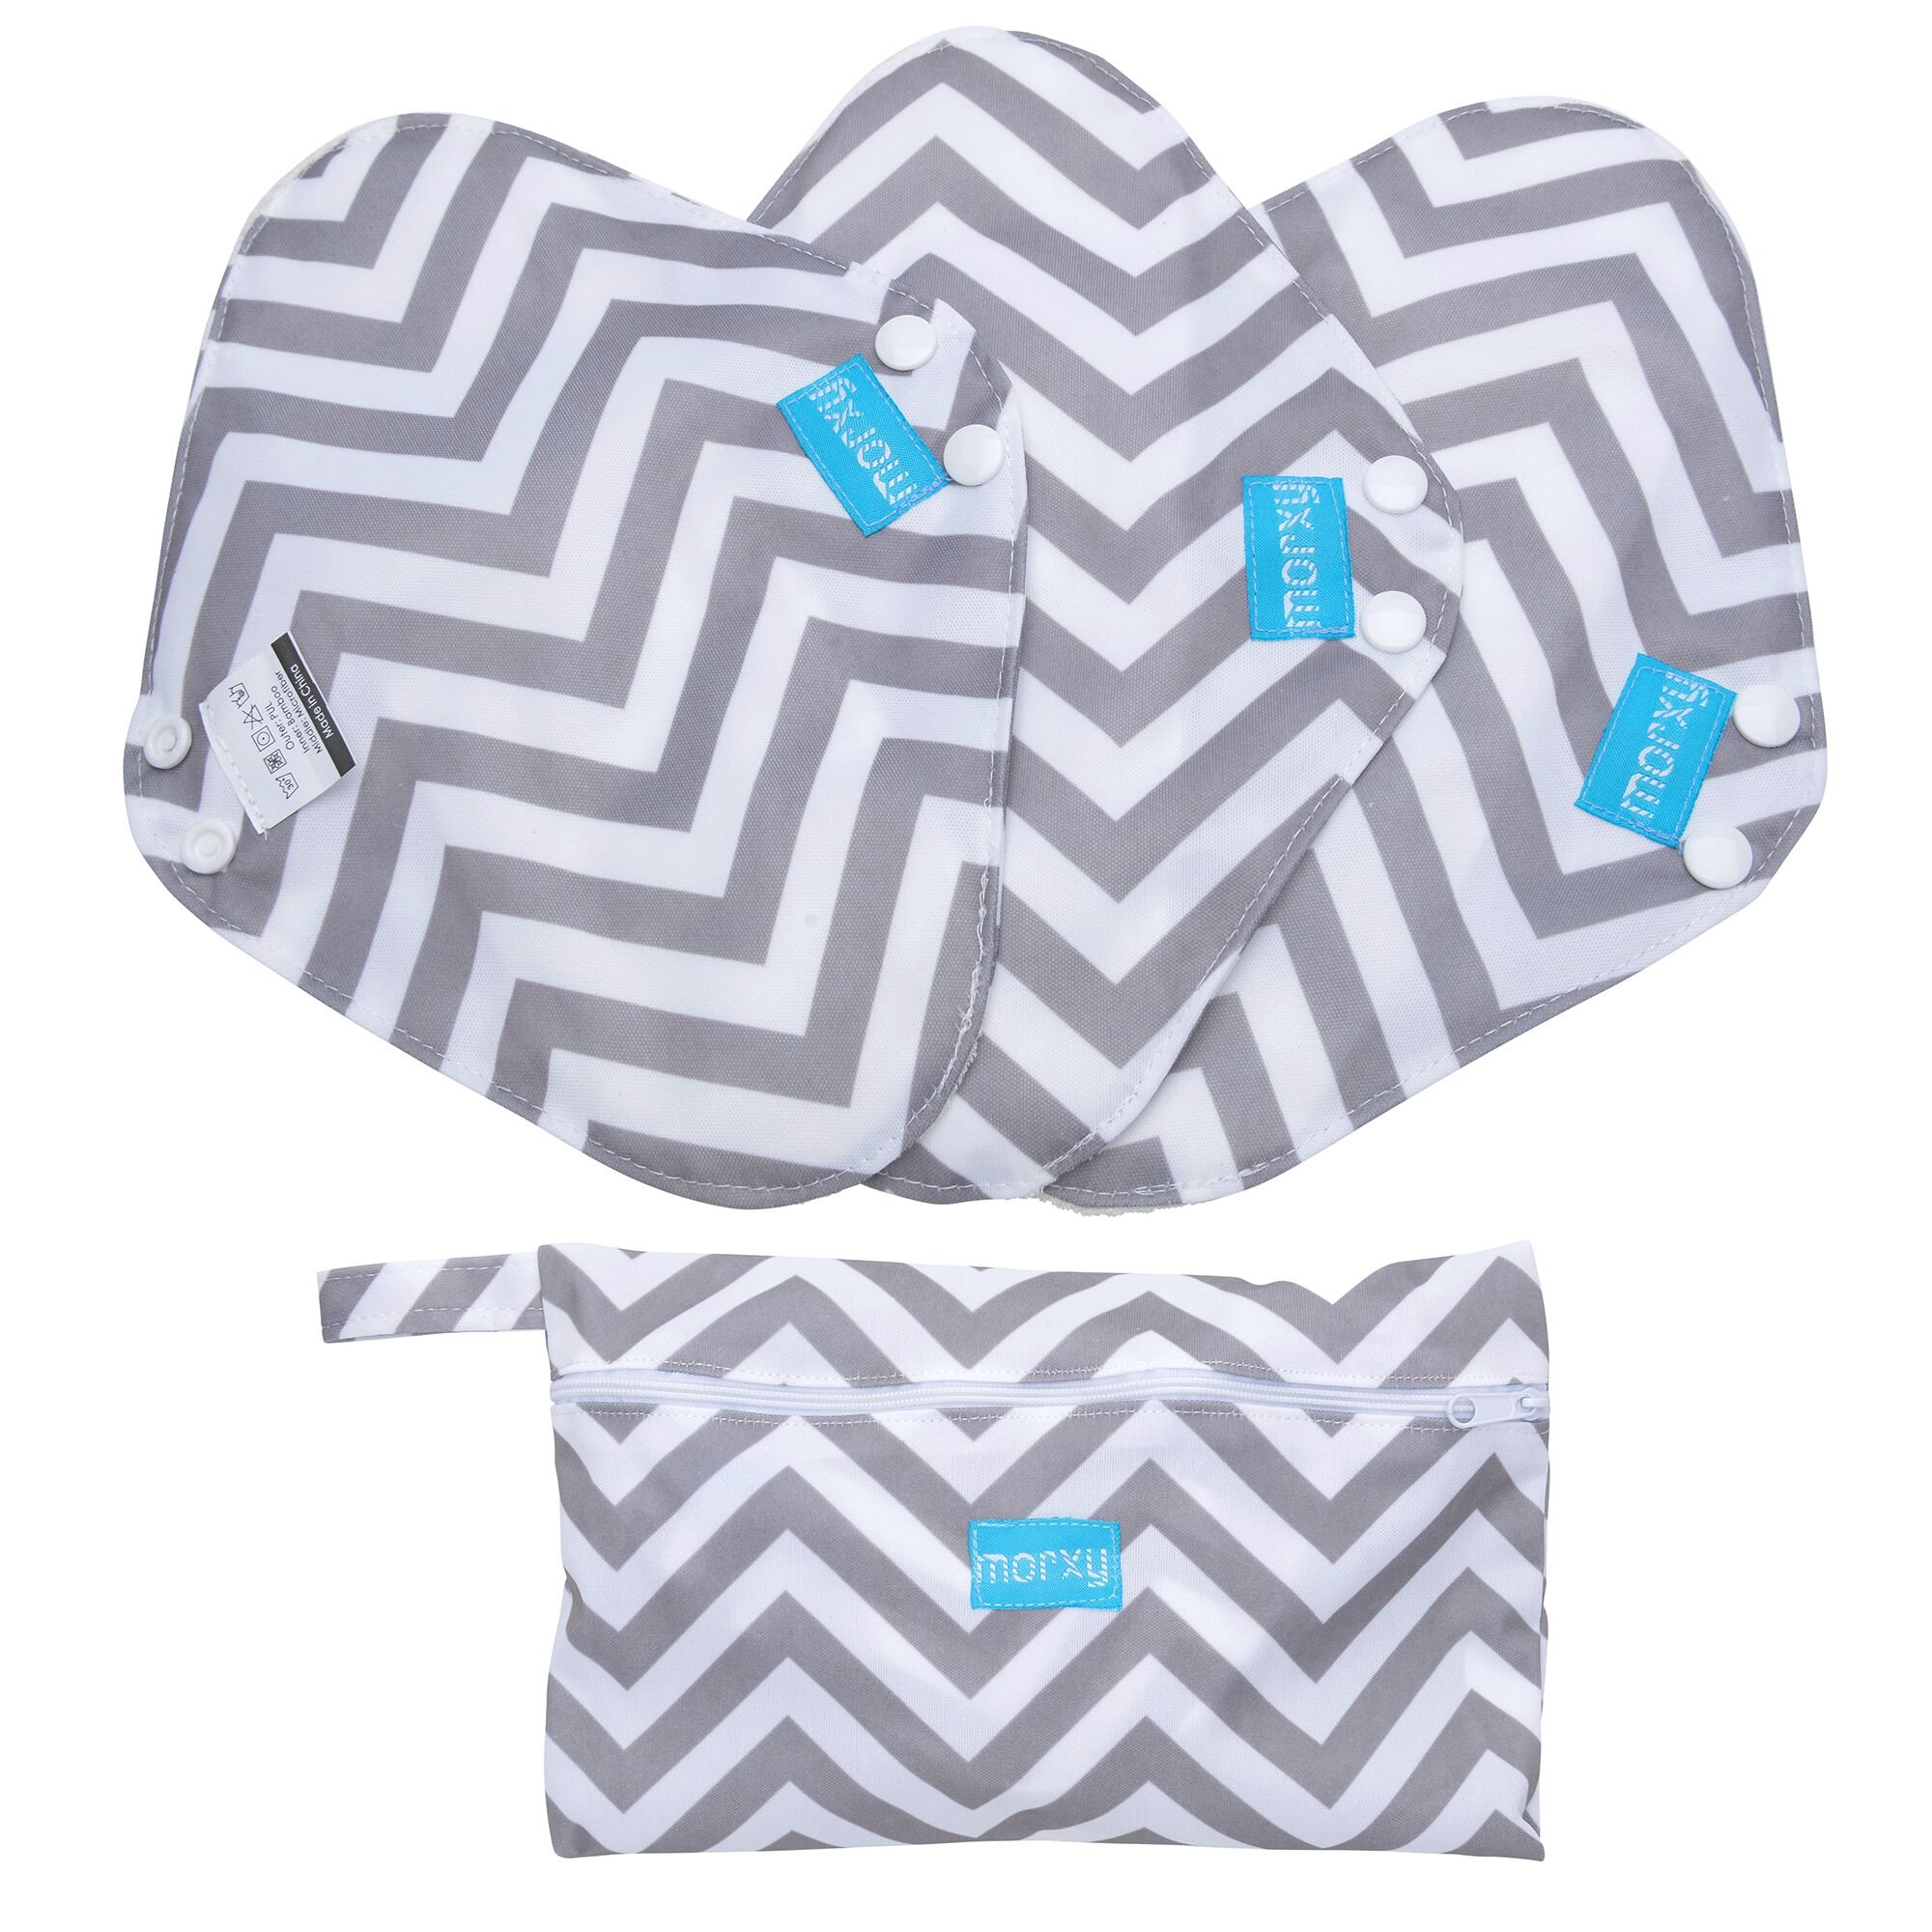 Morxy Reusable Panty Liners, Sanitary Pads, Menstrual Pads For Women. Washable Cotton Bamboo Cloth Pads, Incontinence Pads For Light Flow - 3 Pack Set ( Small ) With Wet Bag